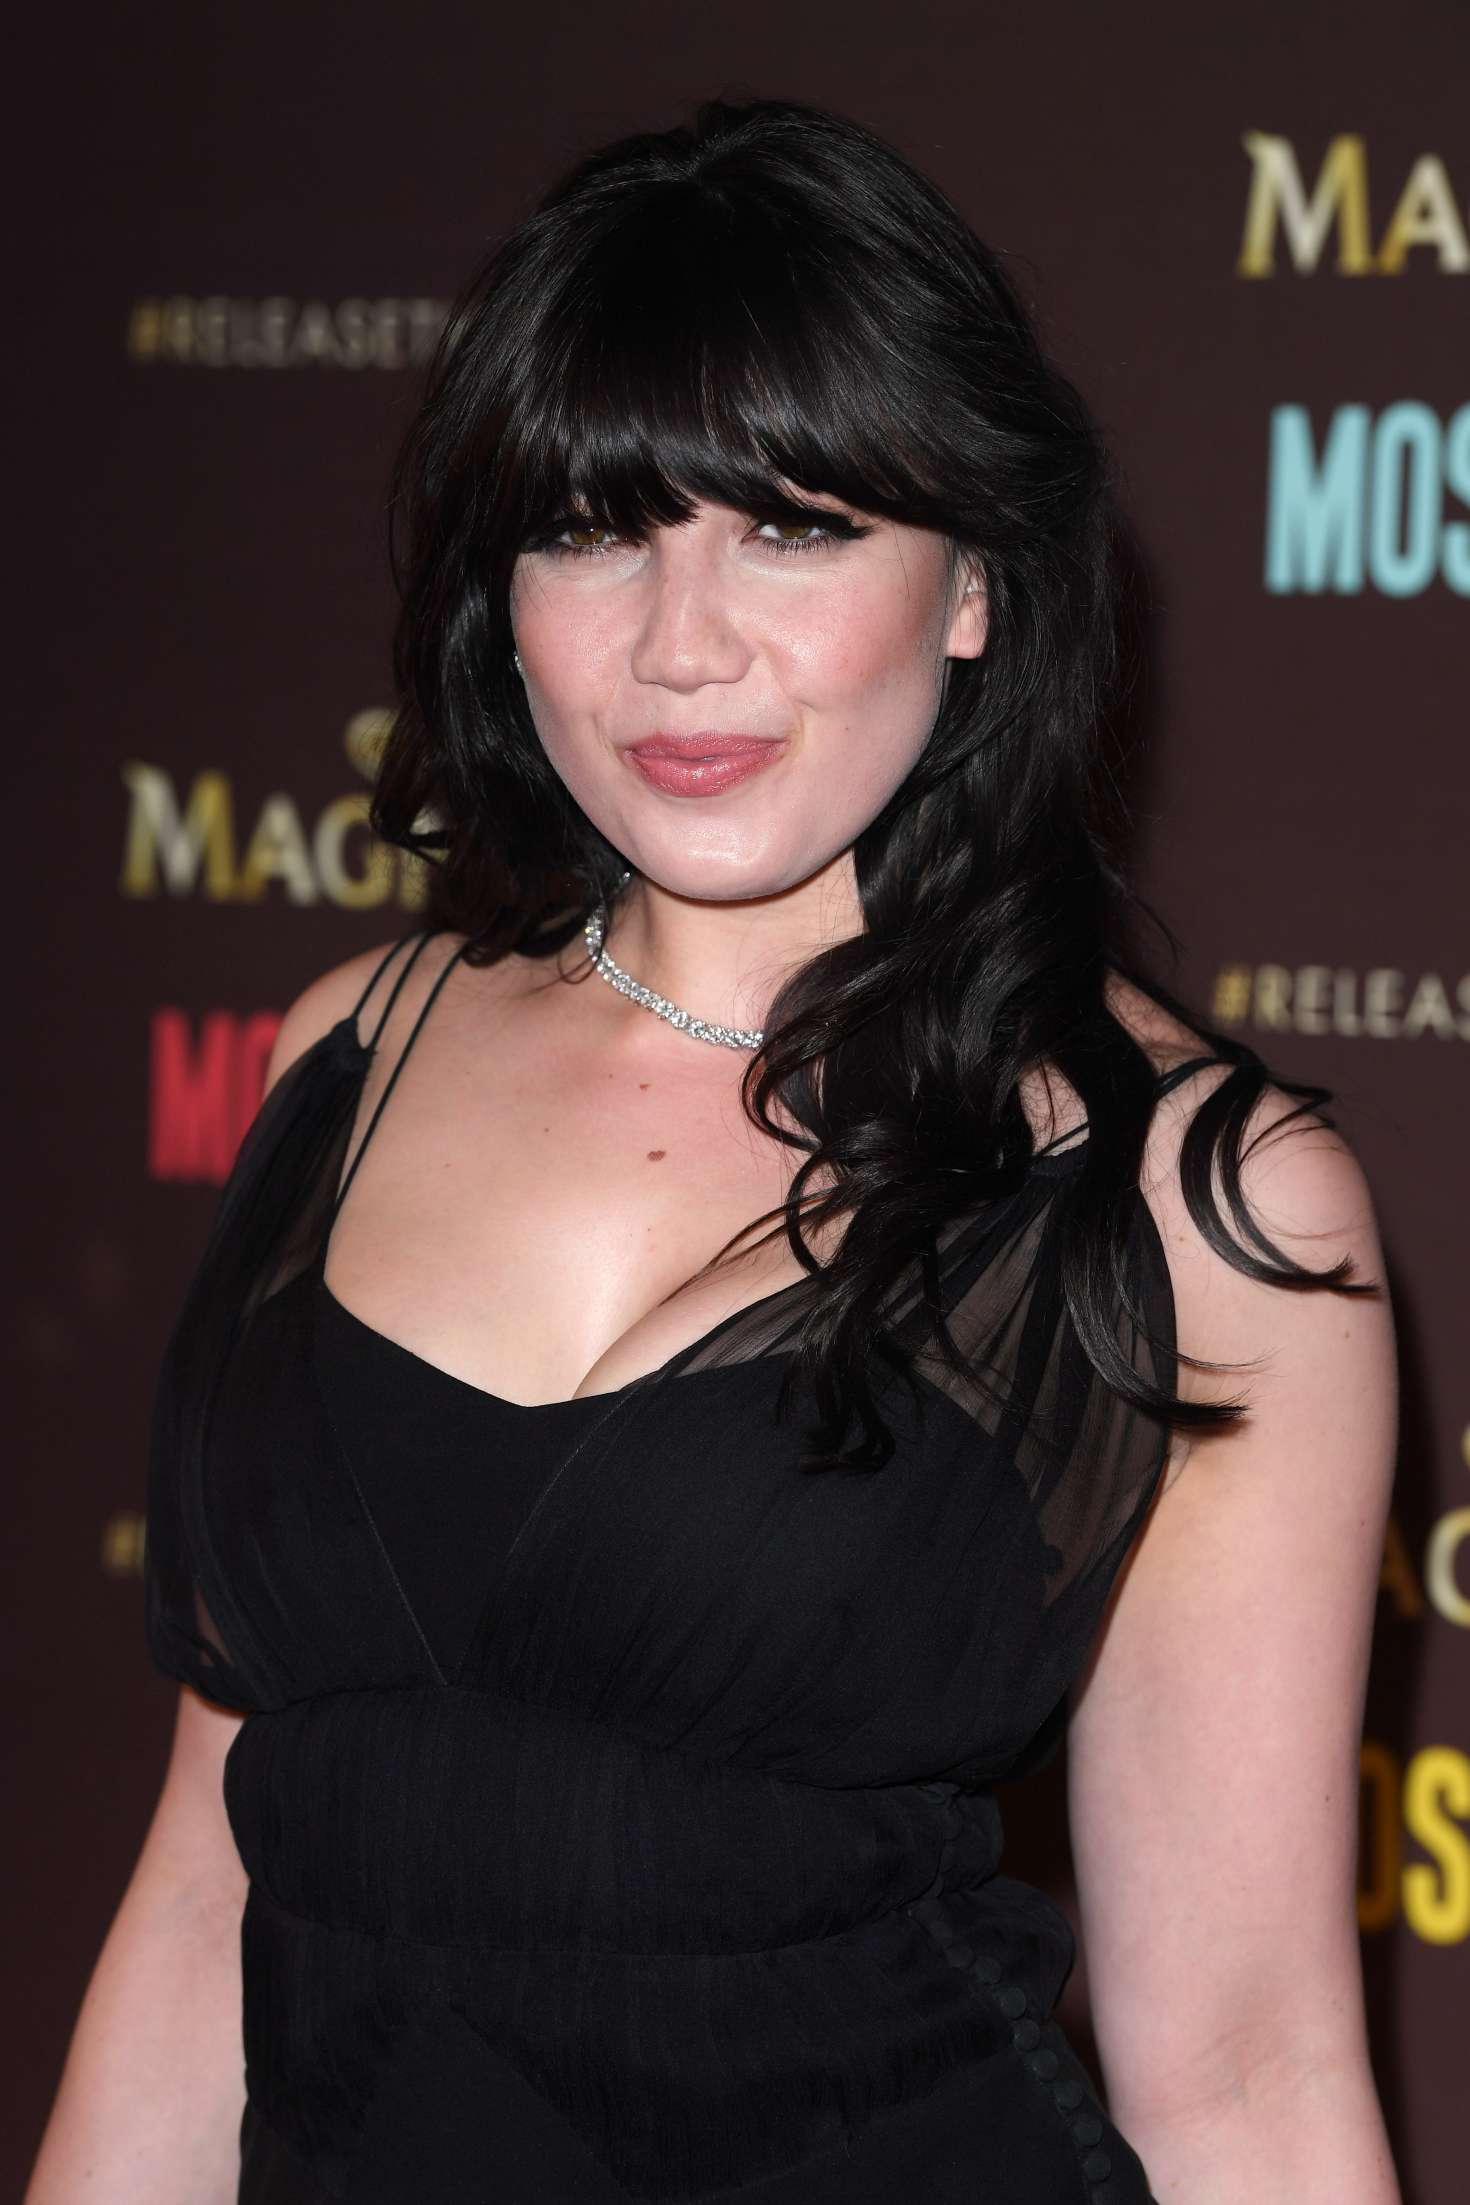 Daisy Lowe Magnum X Moschino Party At 70th Cannes Film